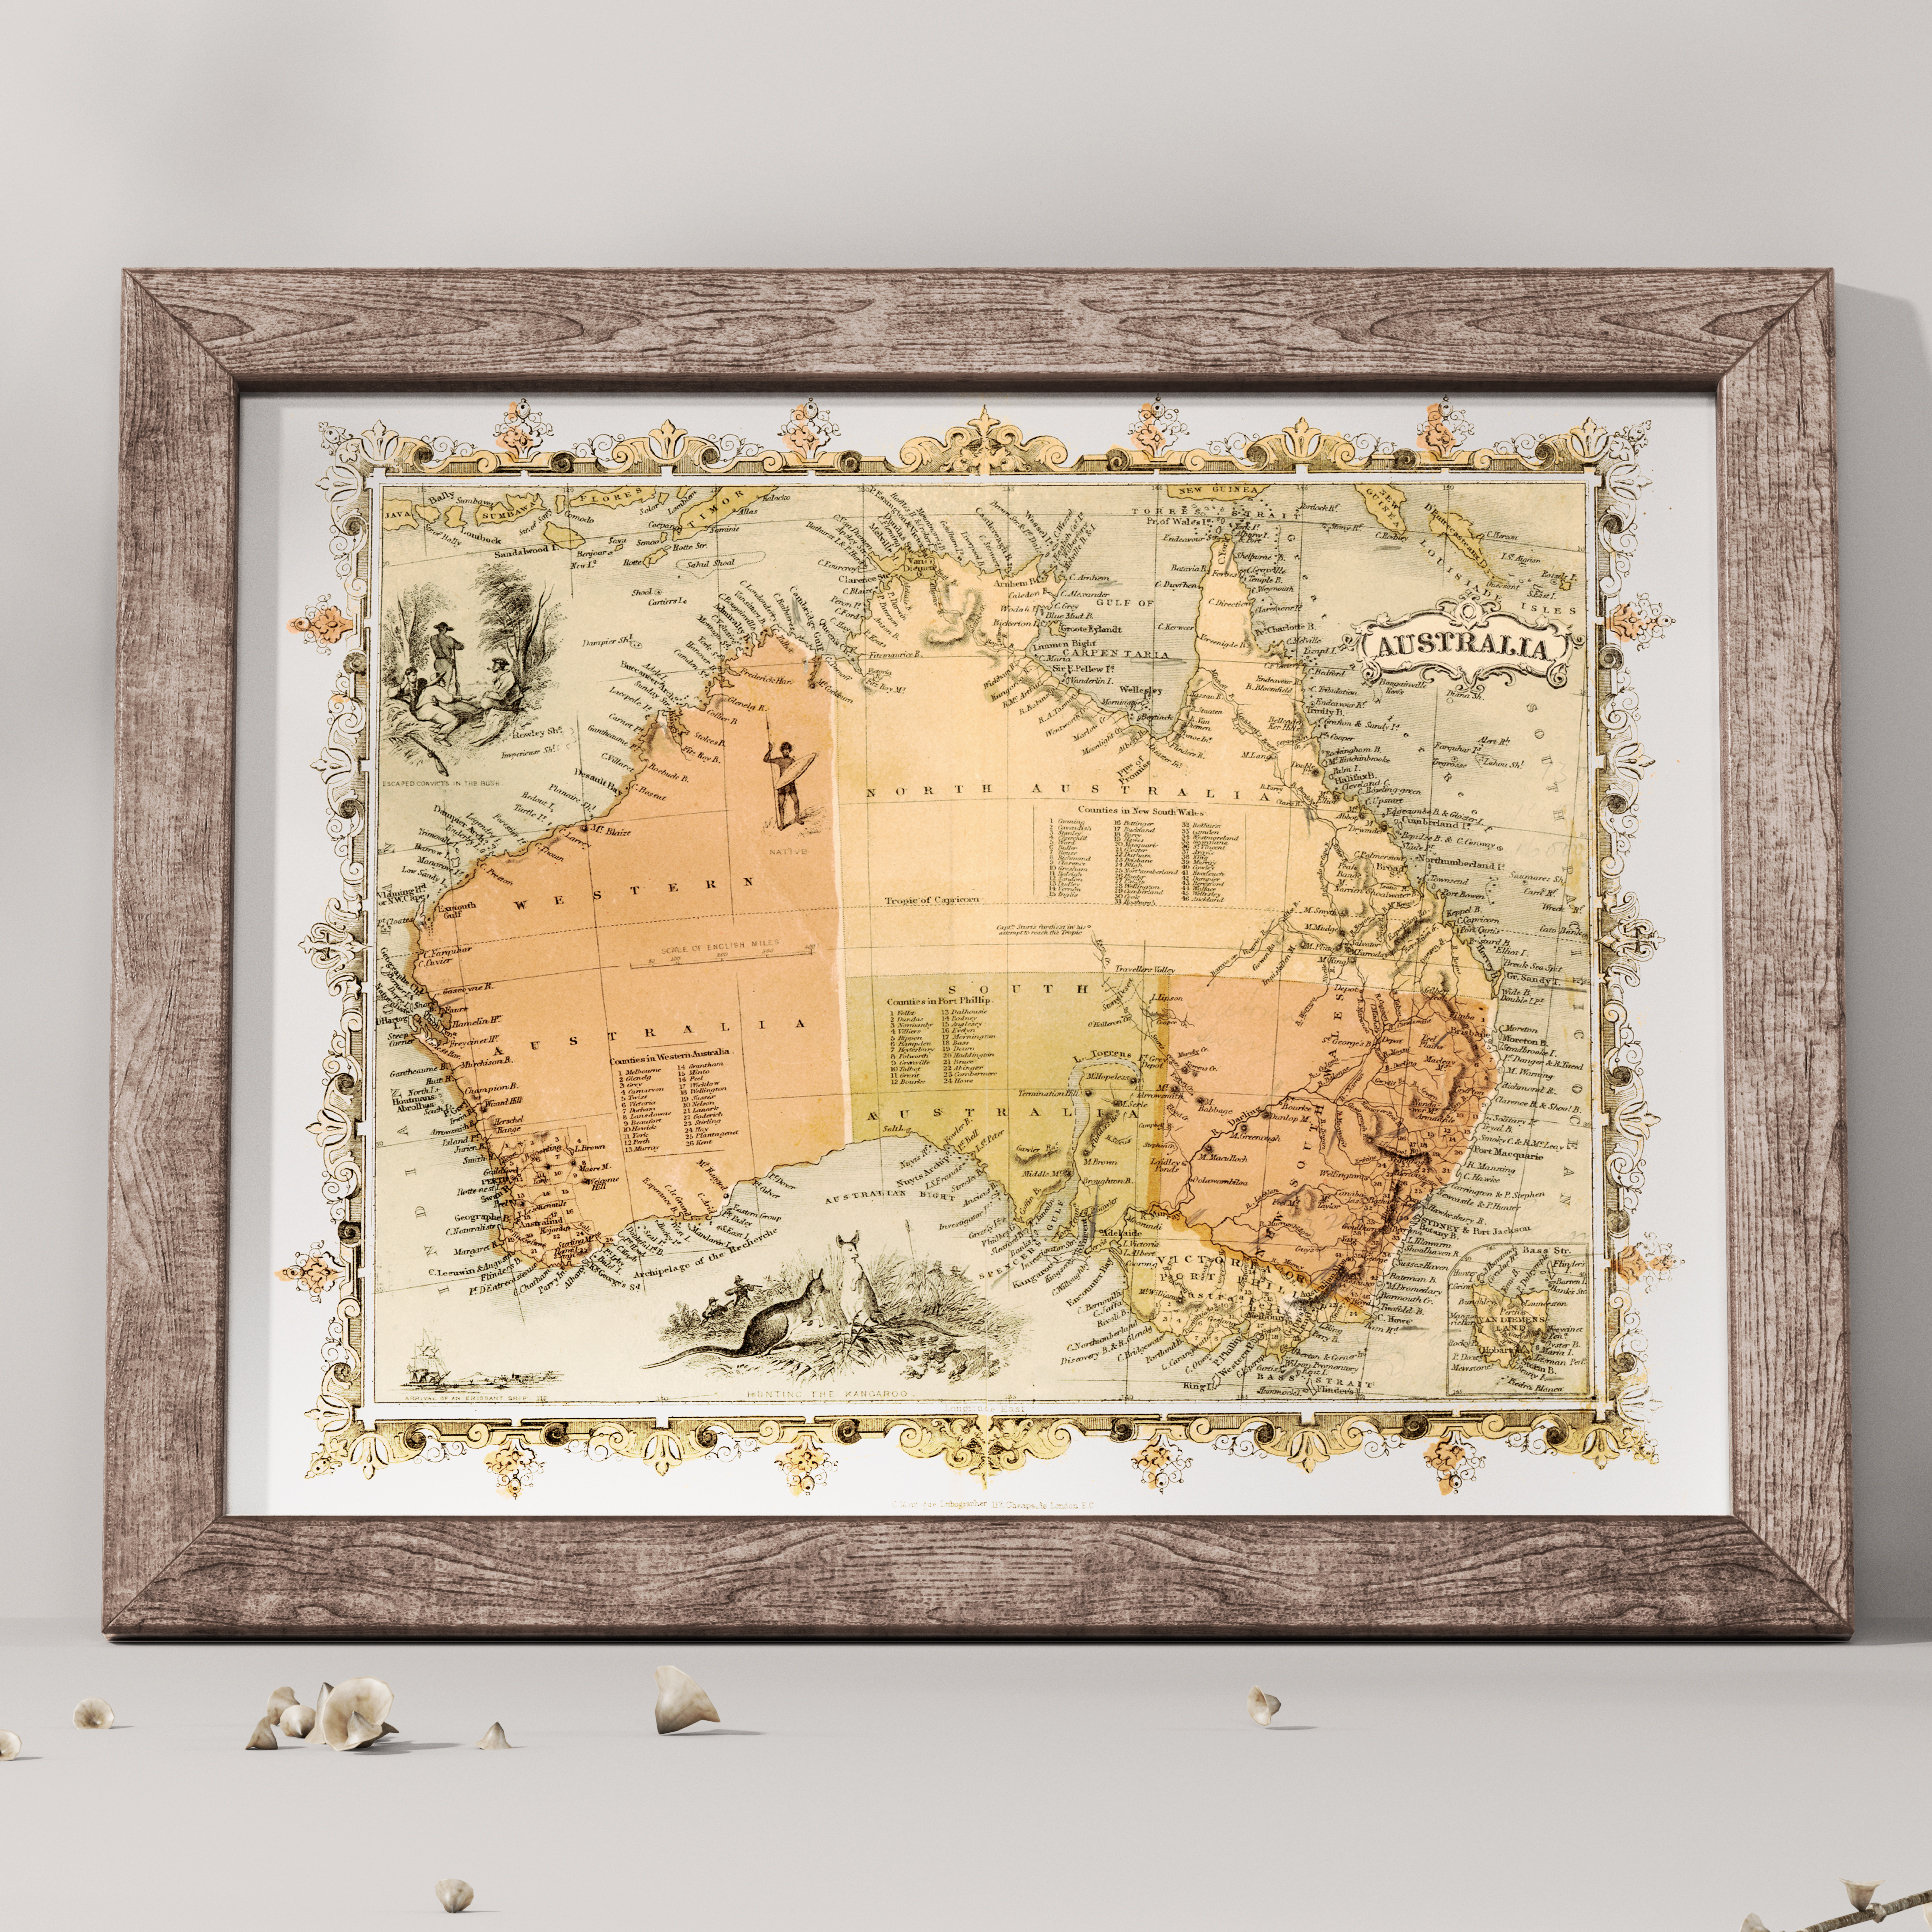 1860s map of australia art print includes illustrations of escaped convicts natives emigrant ship hunting kangaroo